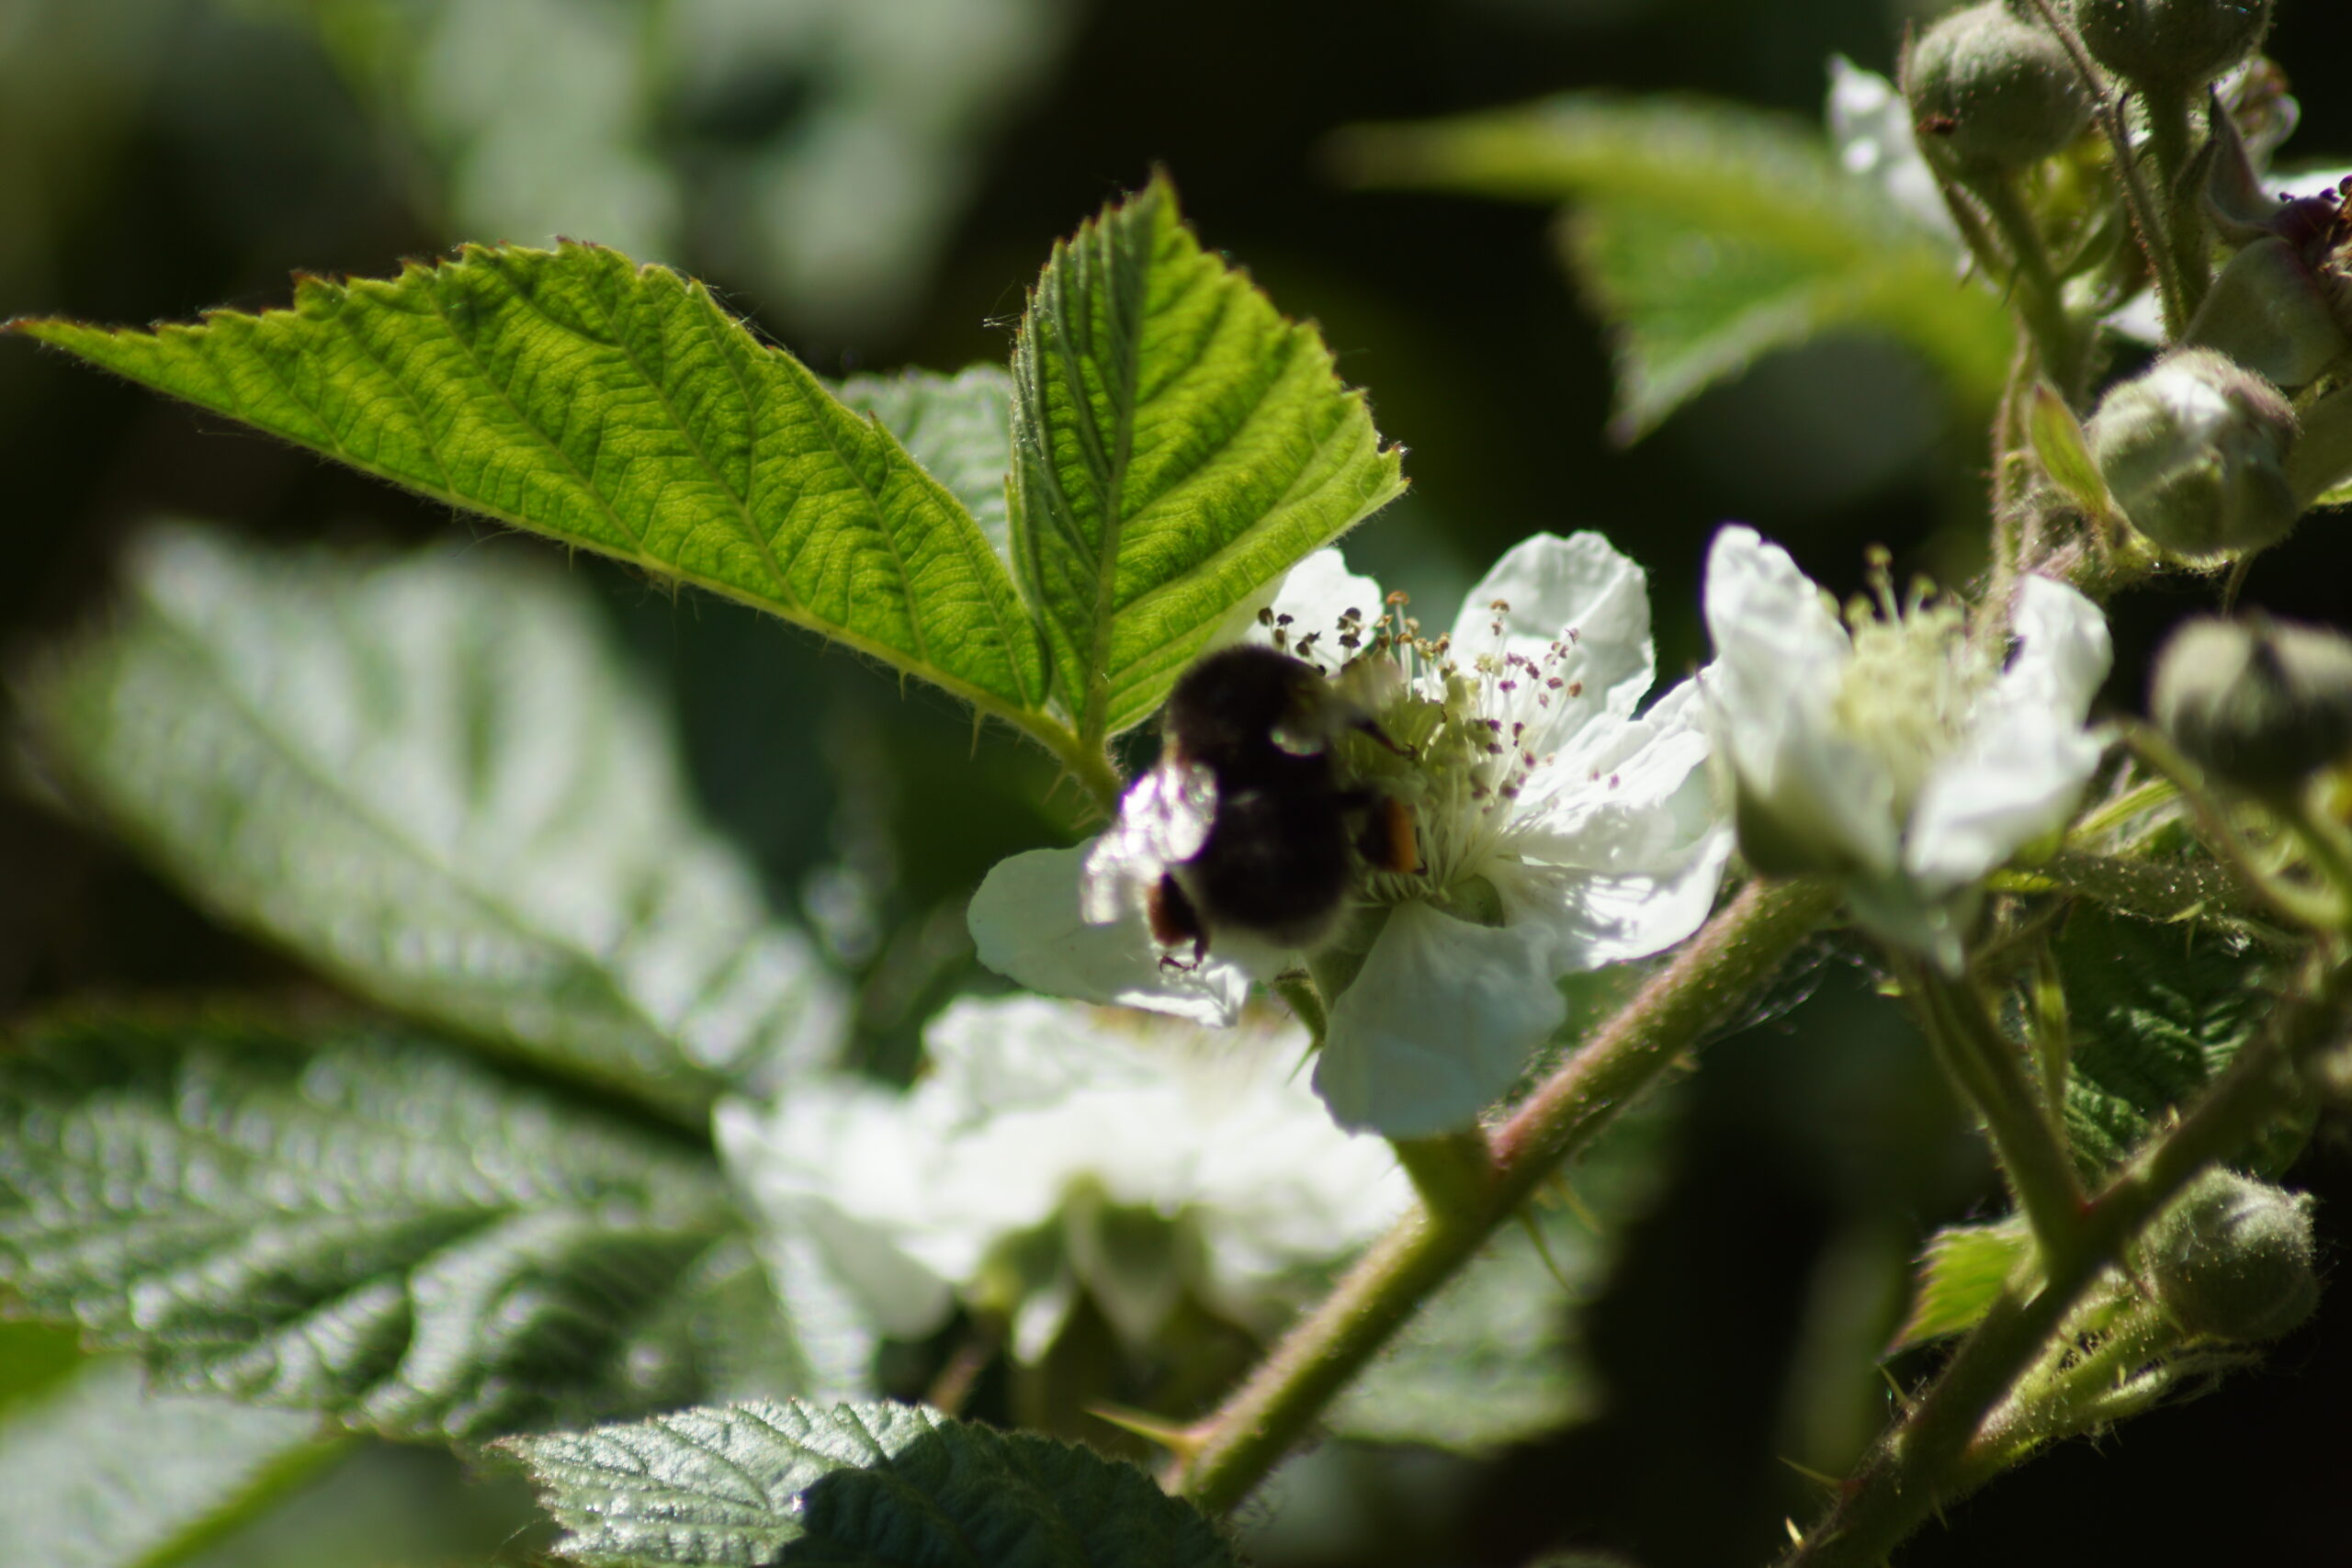 Bramble flower with white tailed bumble bee